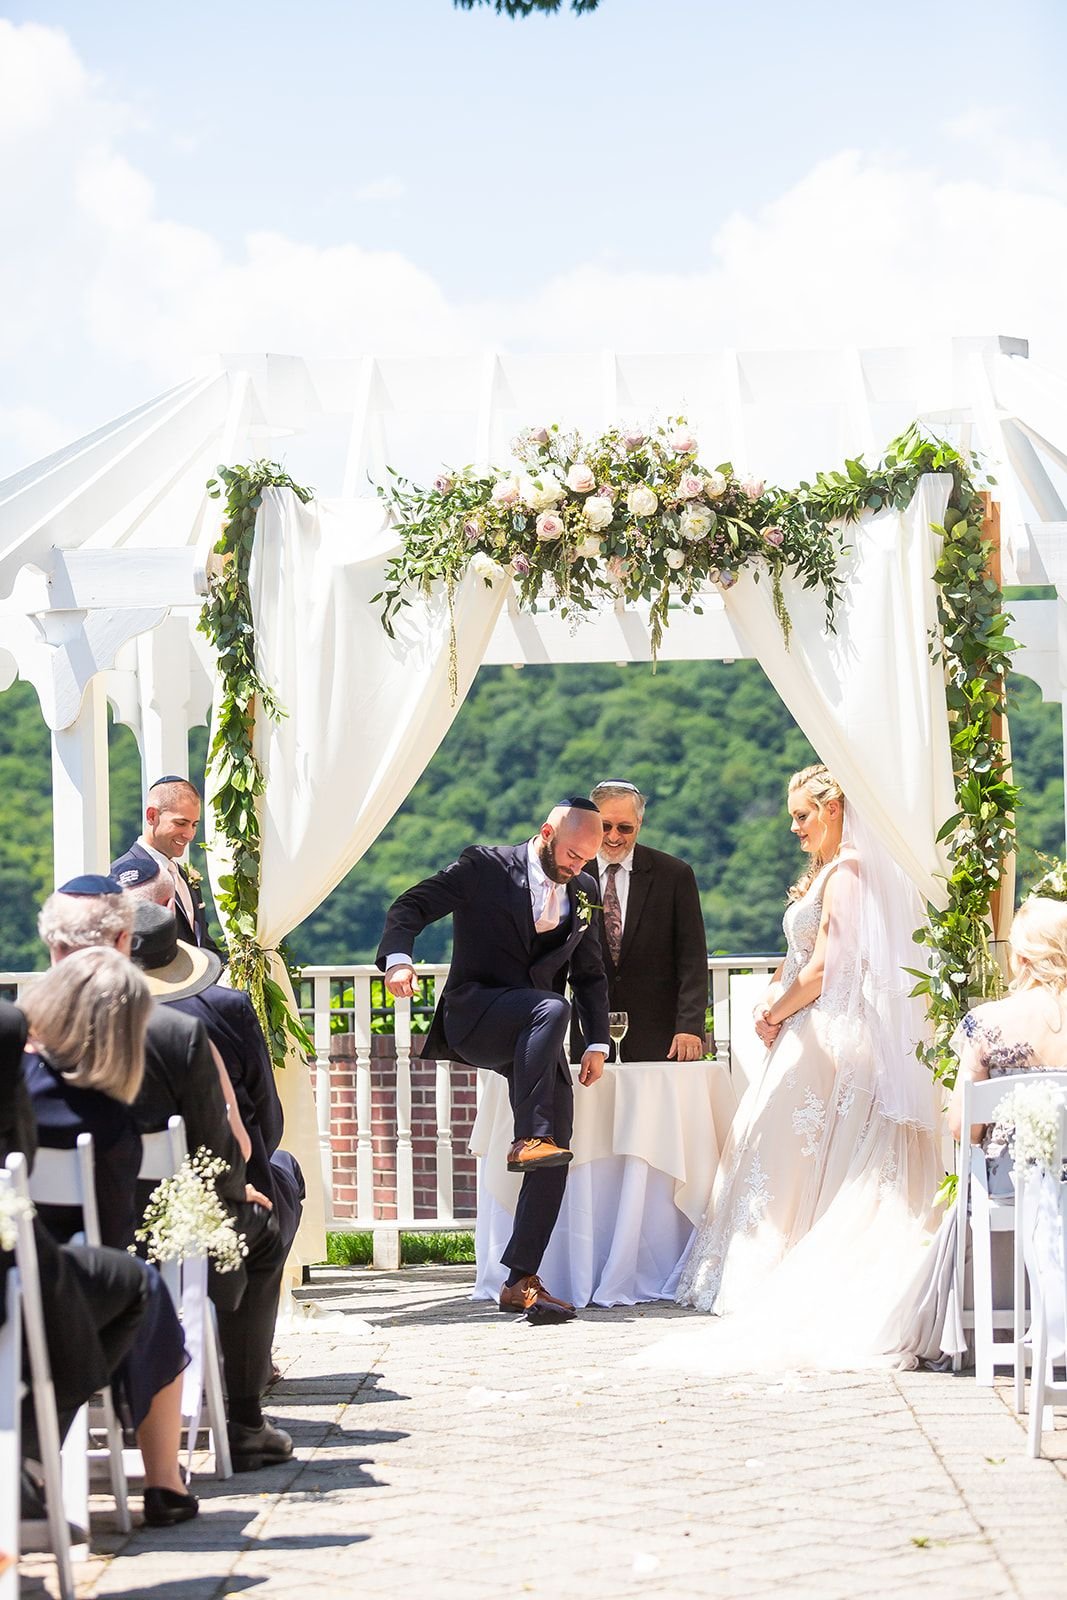 Breaking The Glass Tradition In 2020 Jewish Wedding Jewish Wedding Traditions Wedding